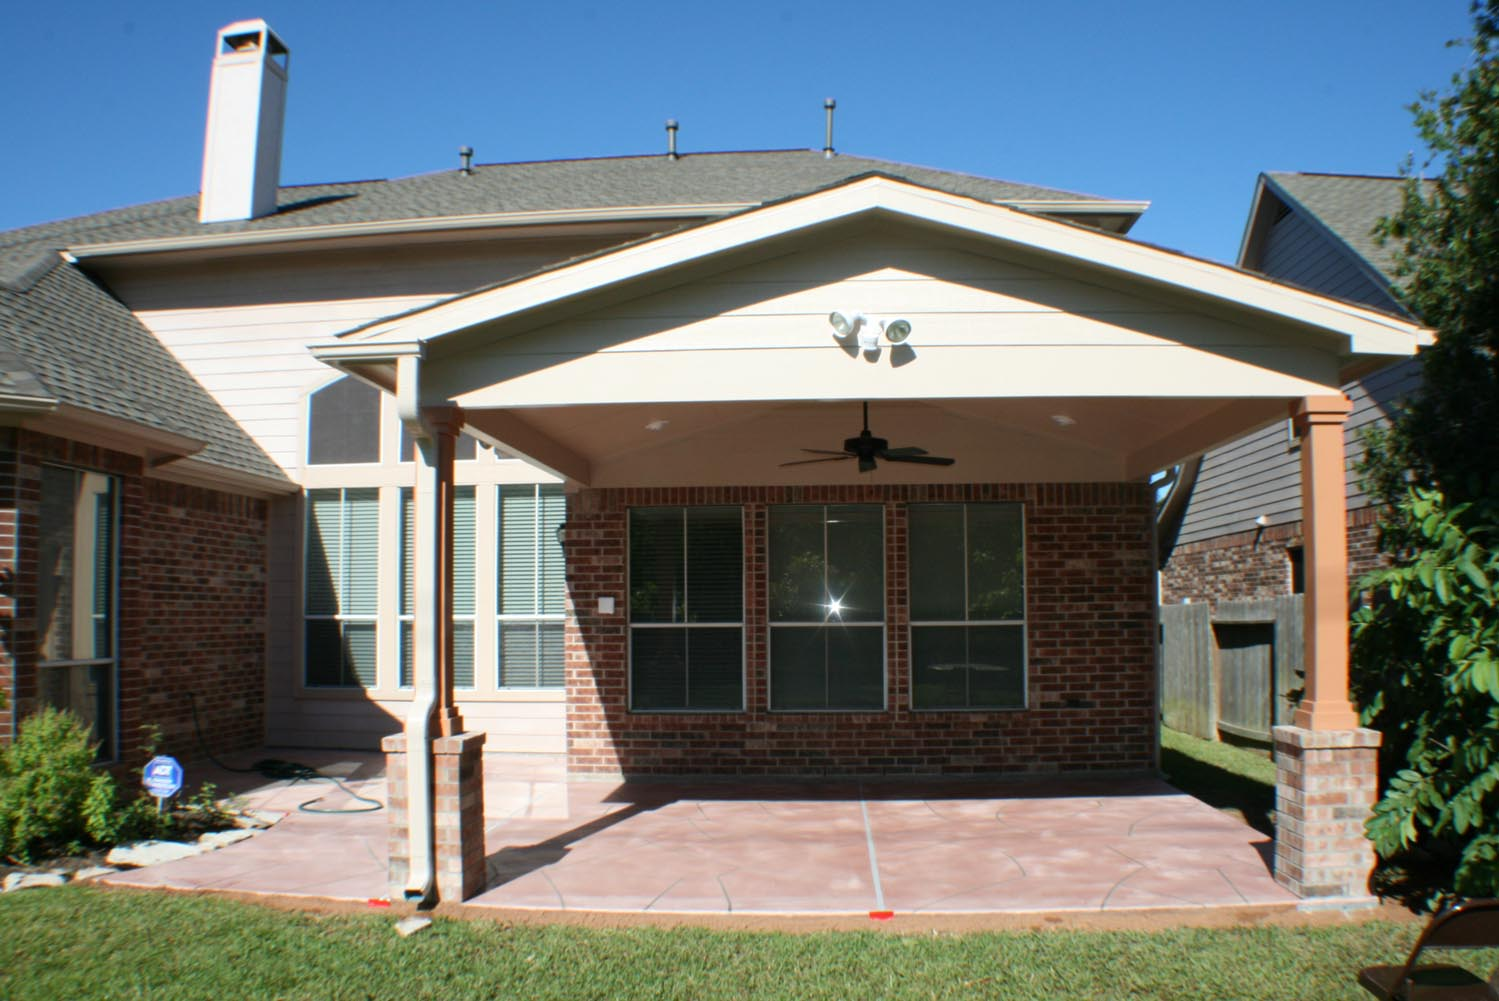 Patio Cover In Houston Gable Roof Hhi Patio Covers